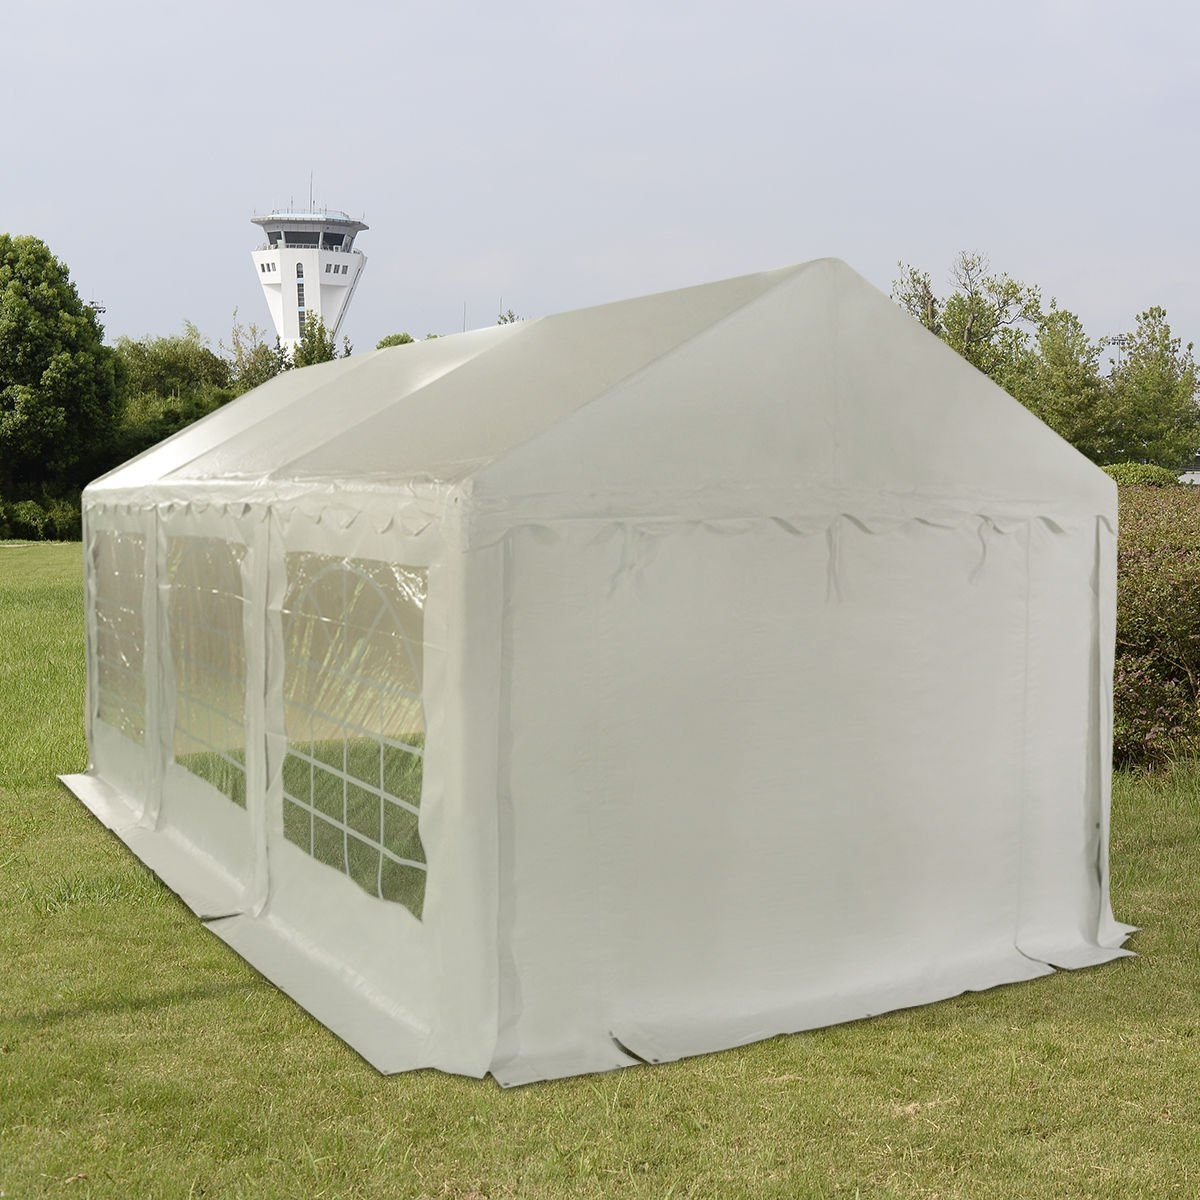 New MTN-G MTN-G 10'X20' Wedding Tent Shelter Heavy Duty Outdoor Party